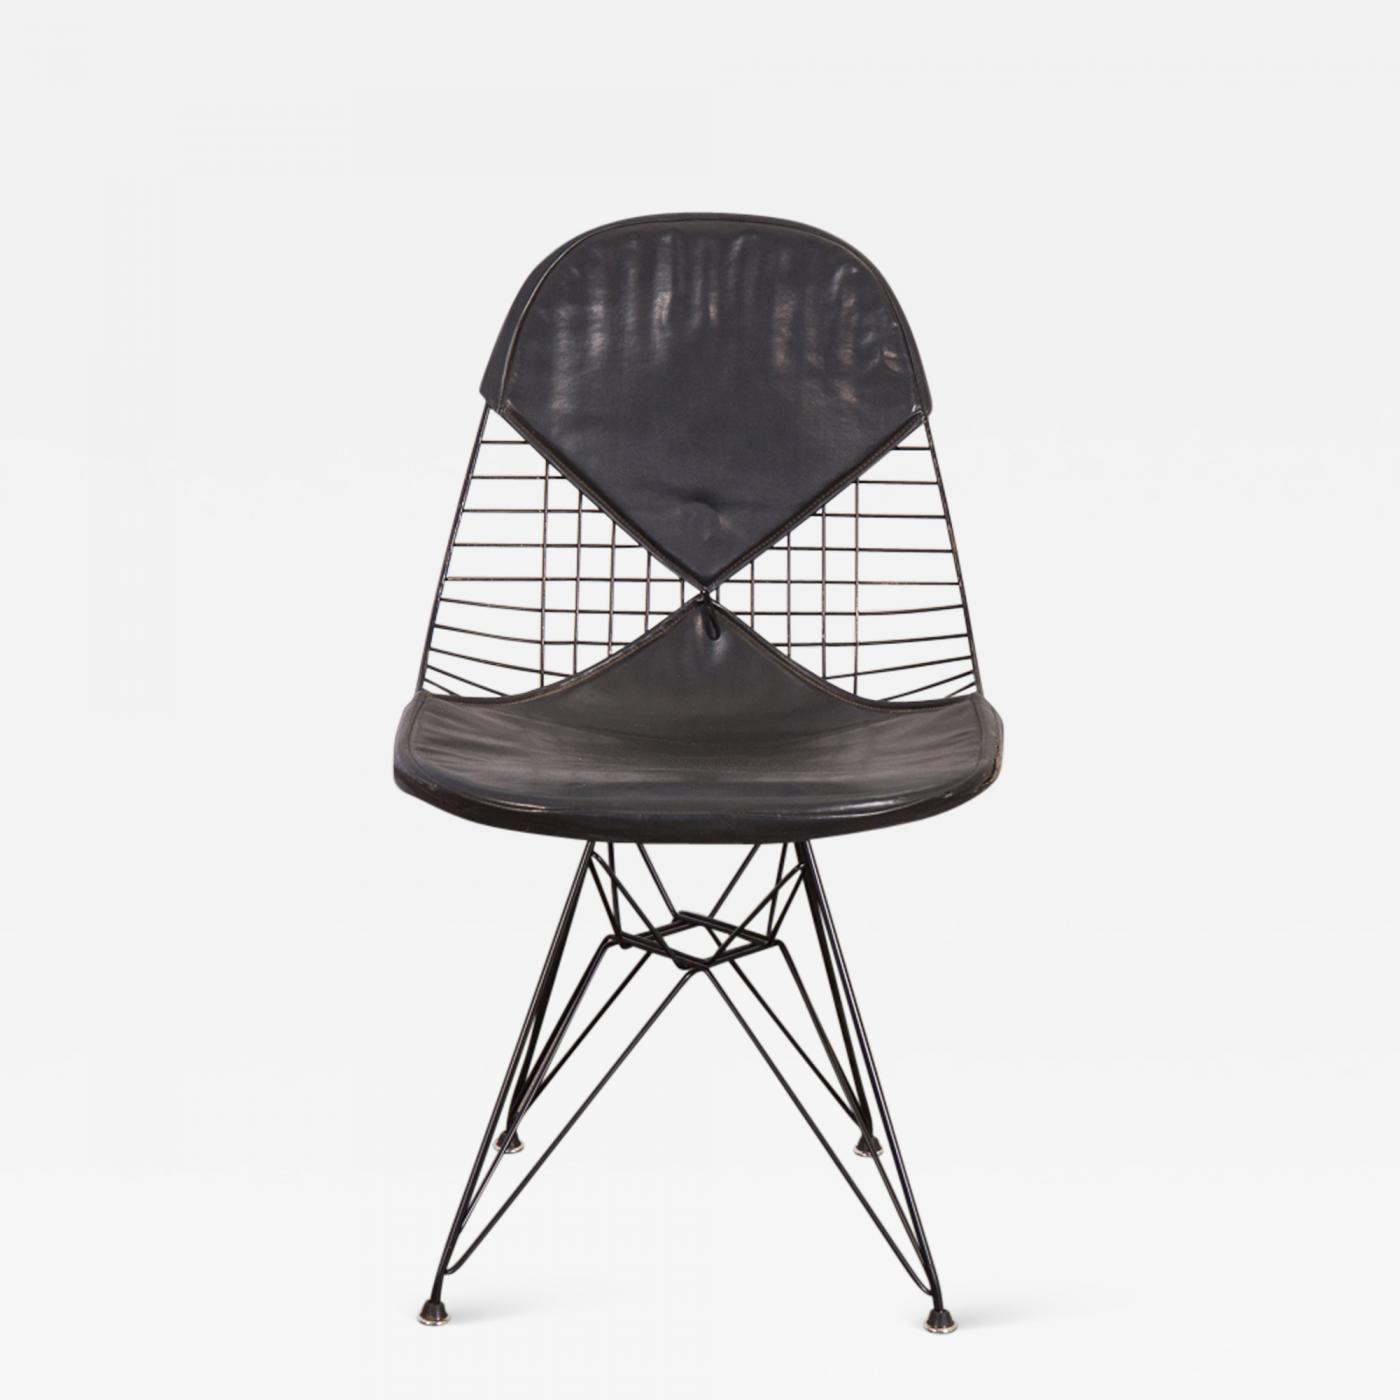 Eames Eiffel Herman Miller Black Eames Wire Chair With Bikini Cover On Eiffel Base